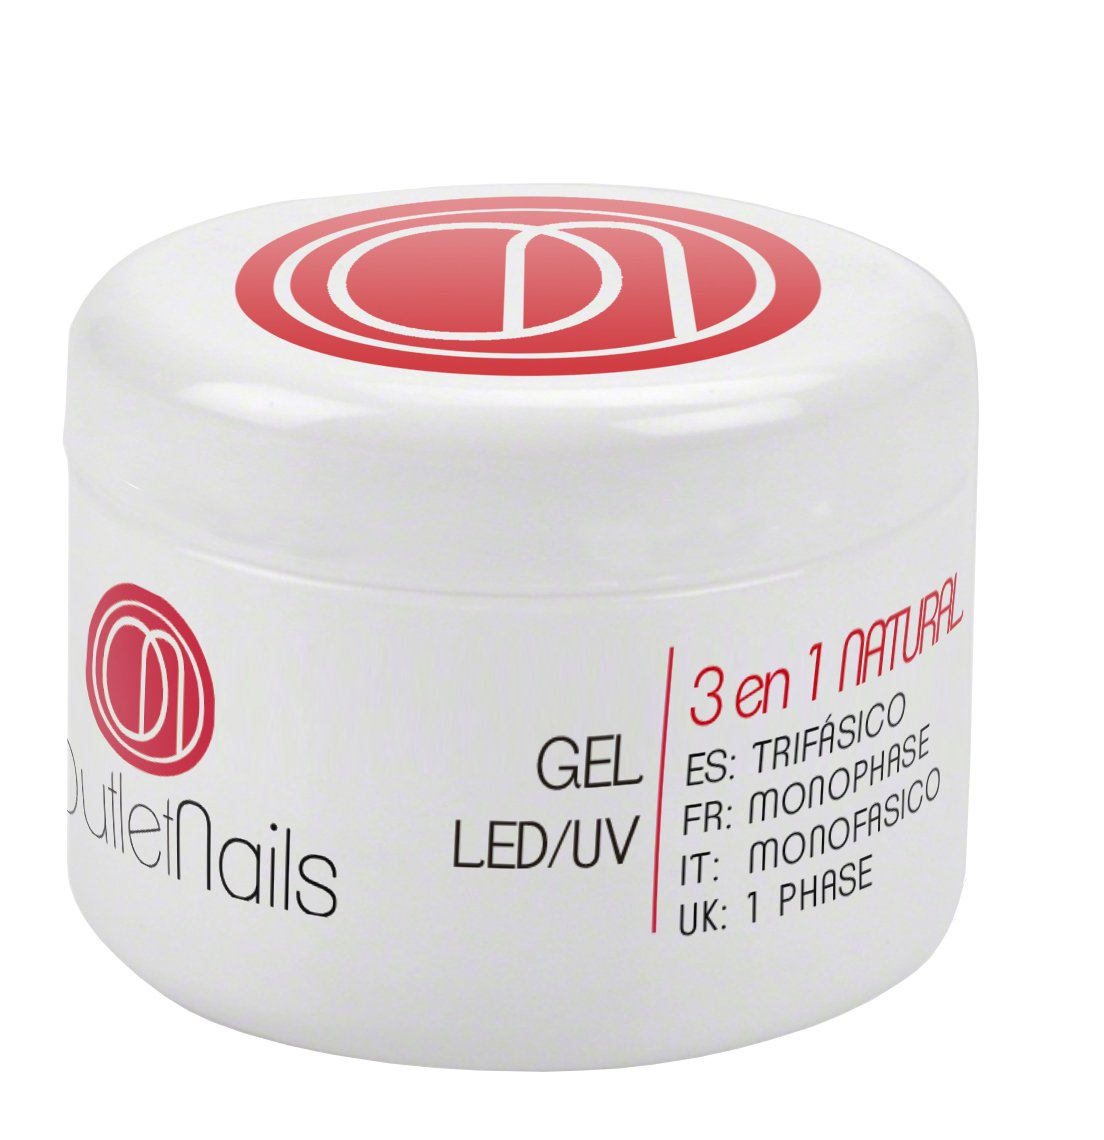 Gel Trifasico Natural UV/LED 15ml para Uñas de OUTLET NAILS, Viscosidad media, Monophase Gel UV/LED/Monofasico Ser Beauty S.L.